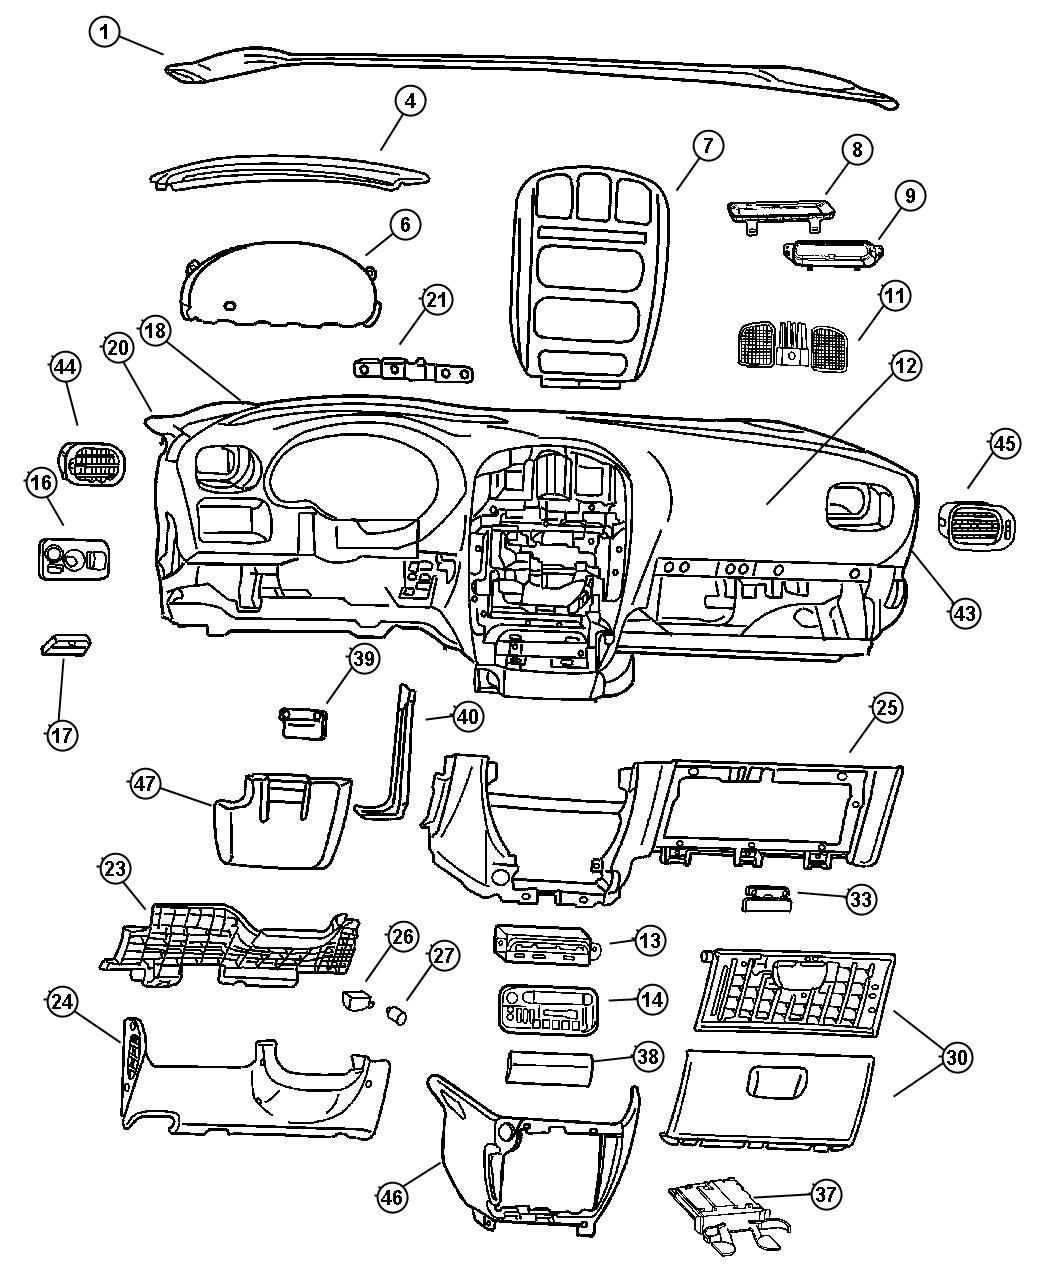 2000 Chrysler 300m Repair Manual Wiring Diagram And Fuse Box